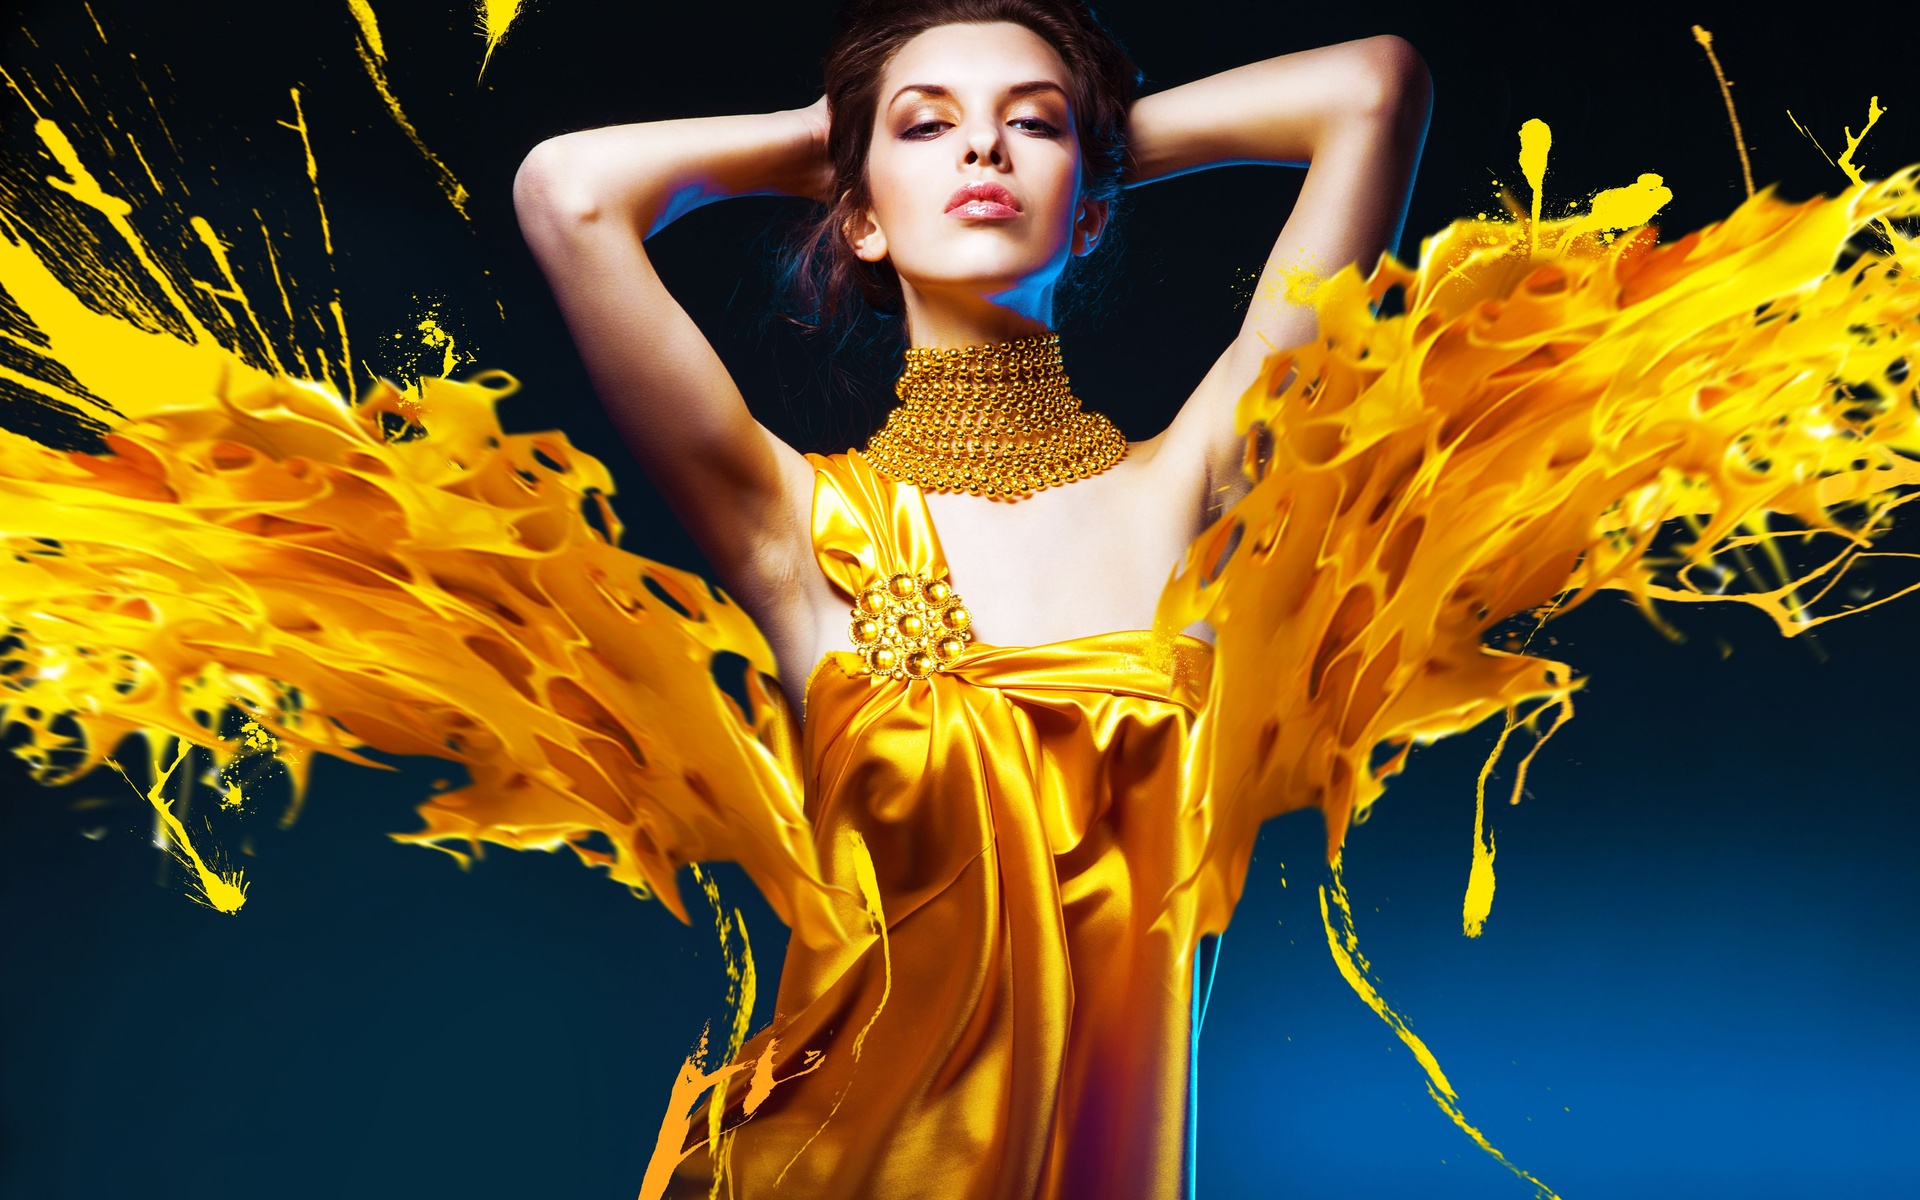 65 fashion hd wallpapers background images wallpaper abyss voltagebd Images